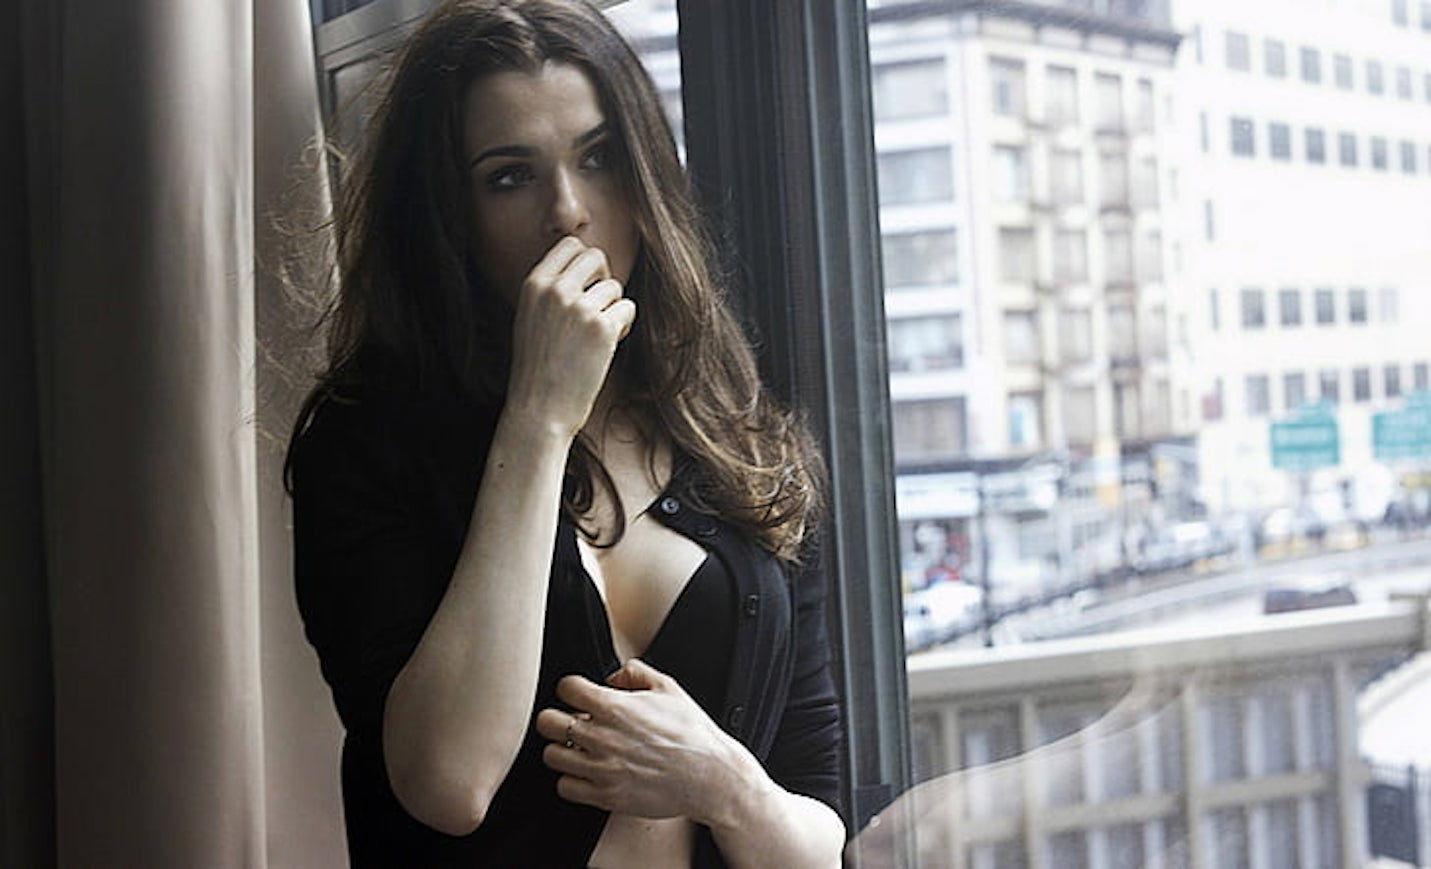 actresses-rachel-weisz-wallpaper-preview